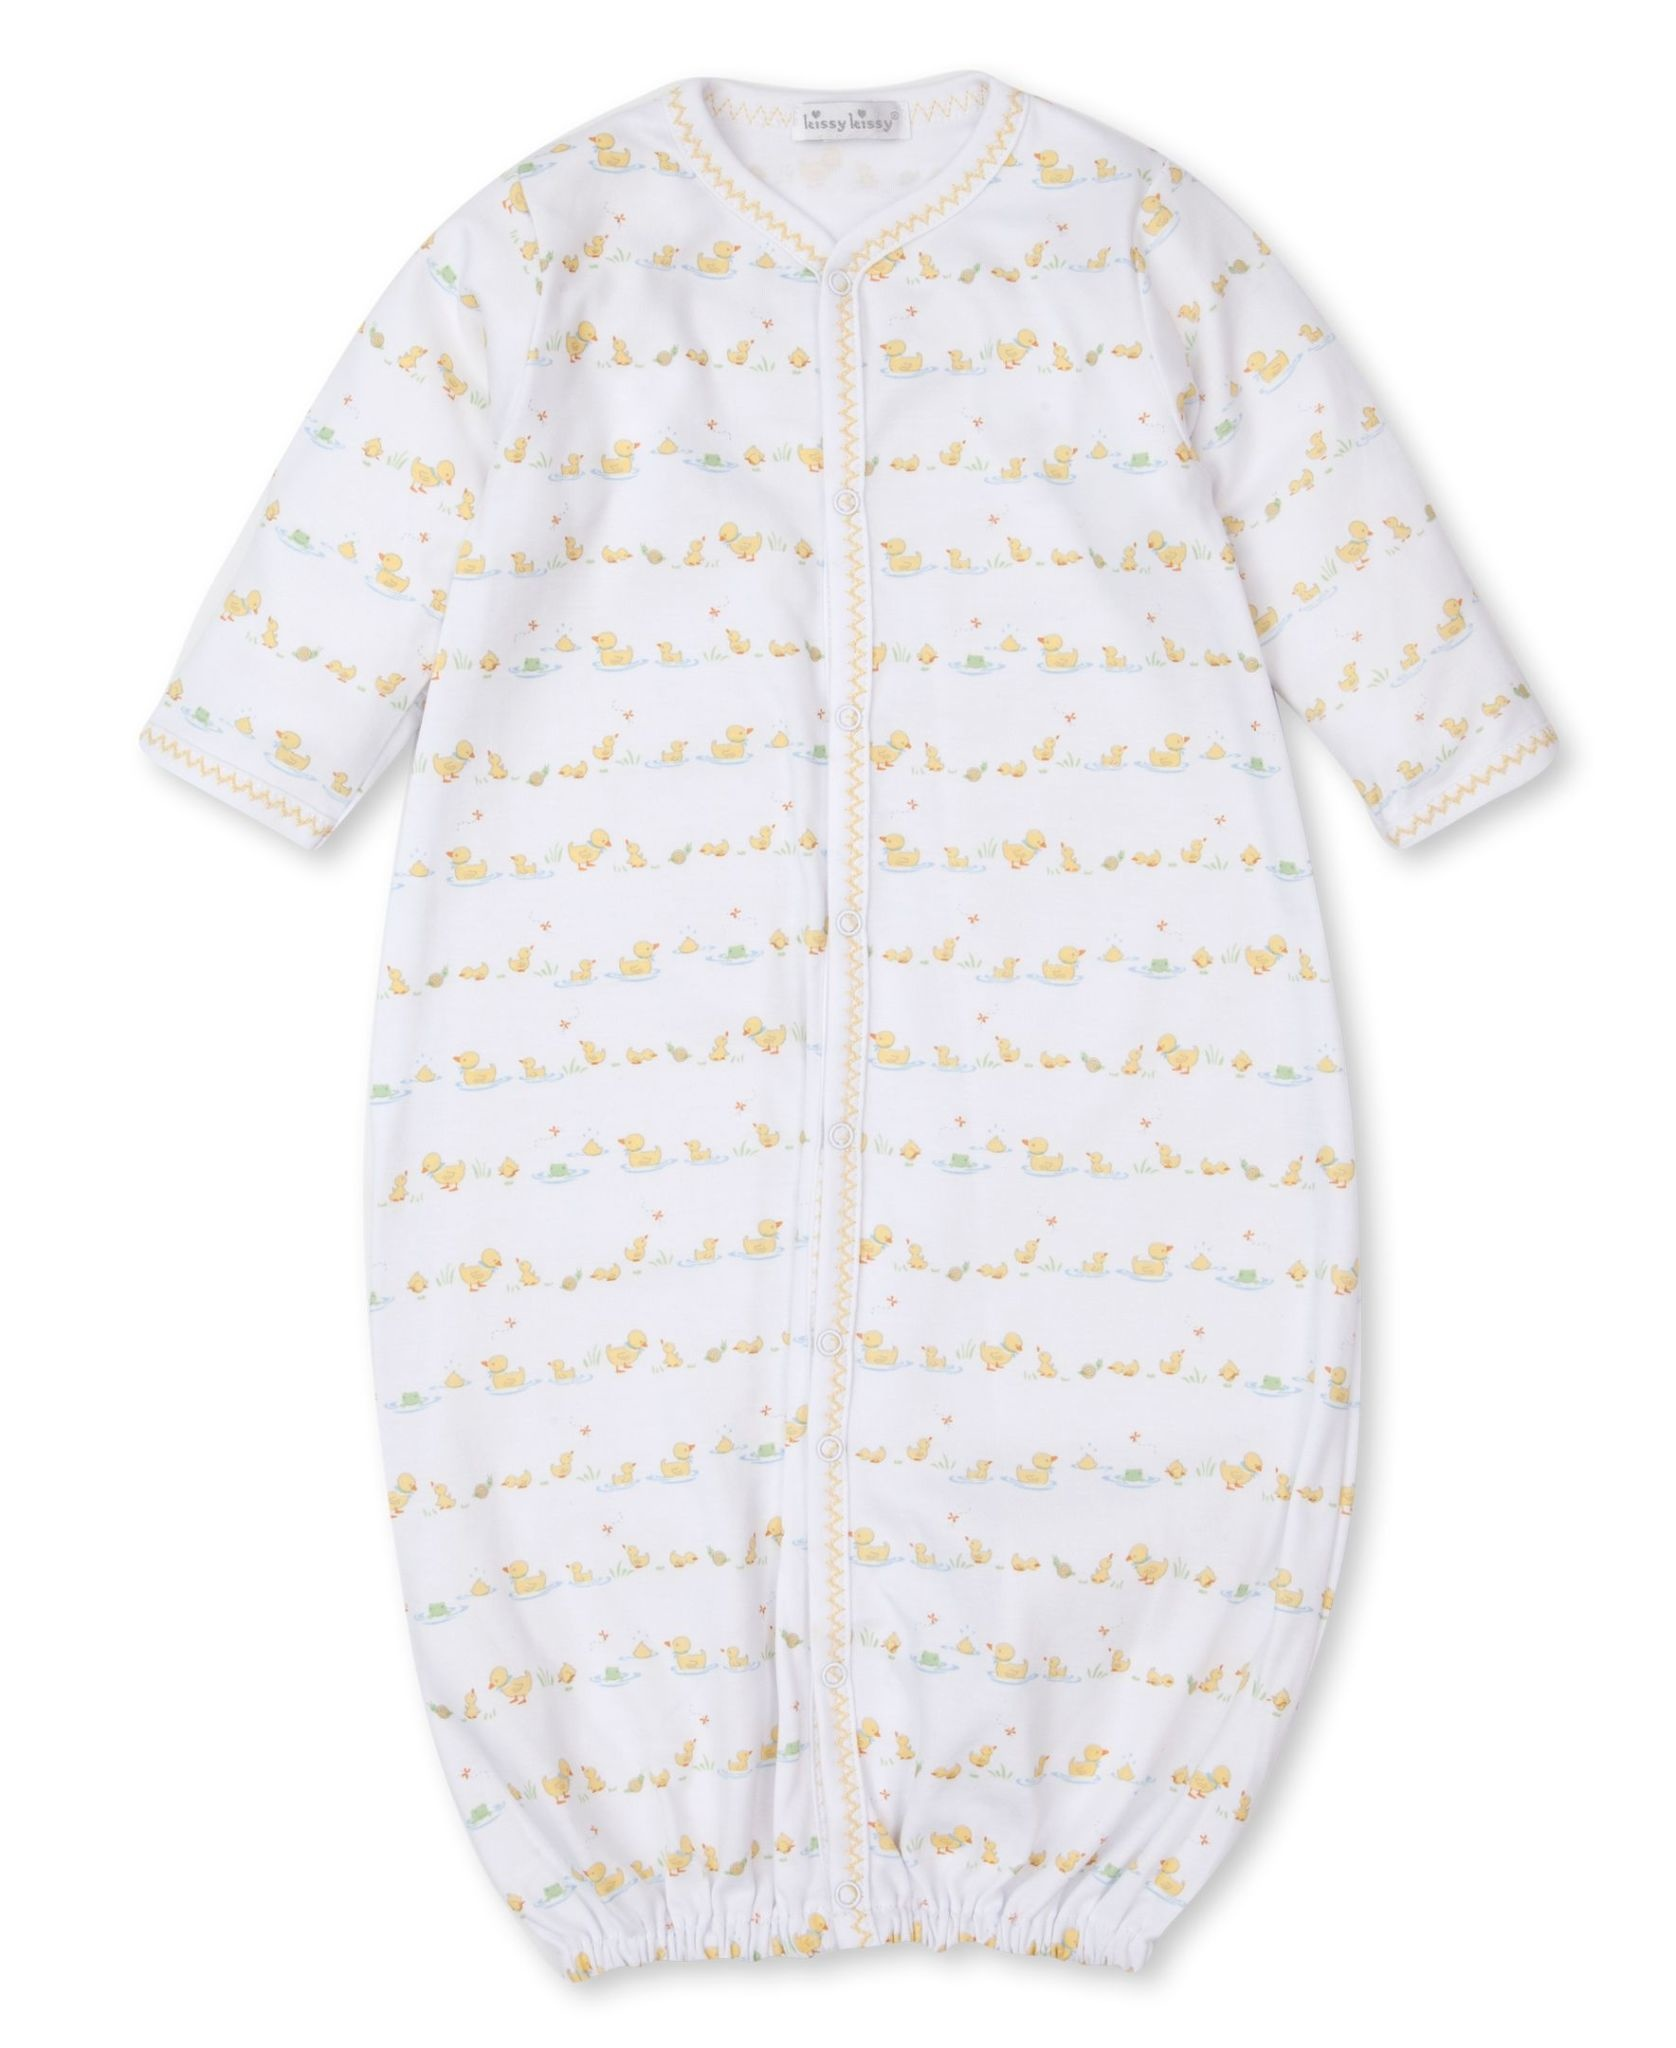 Kissy Kissy Dilly Dally Duckies Conv Gown